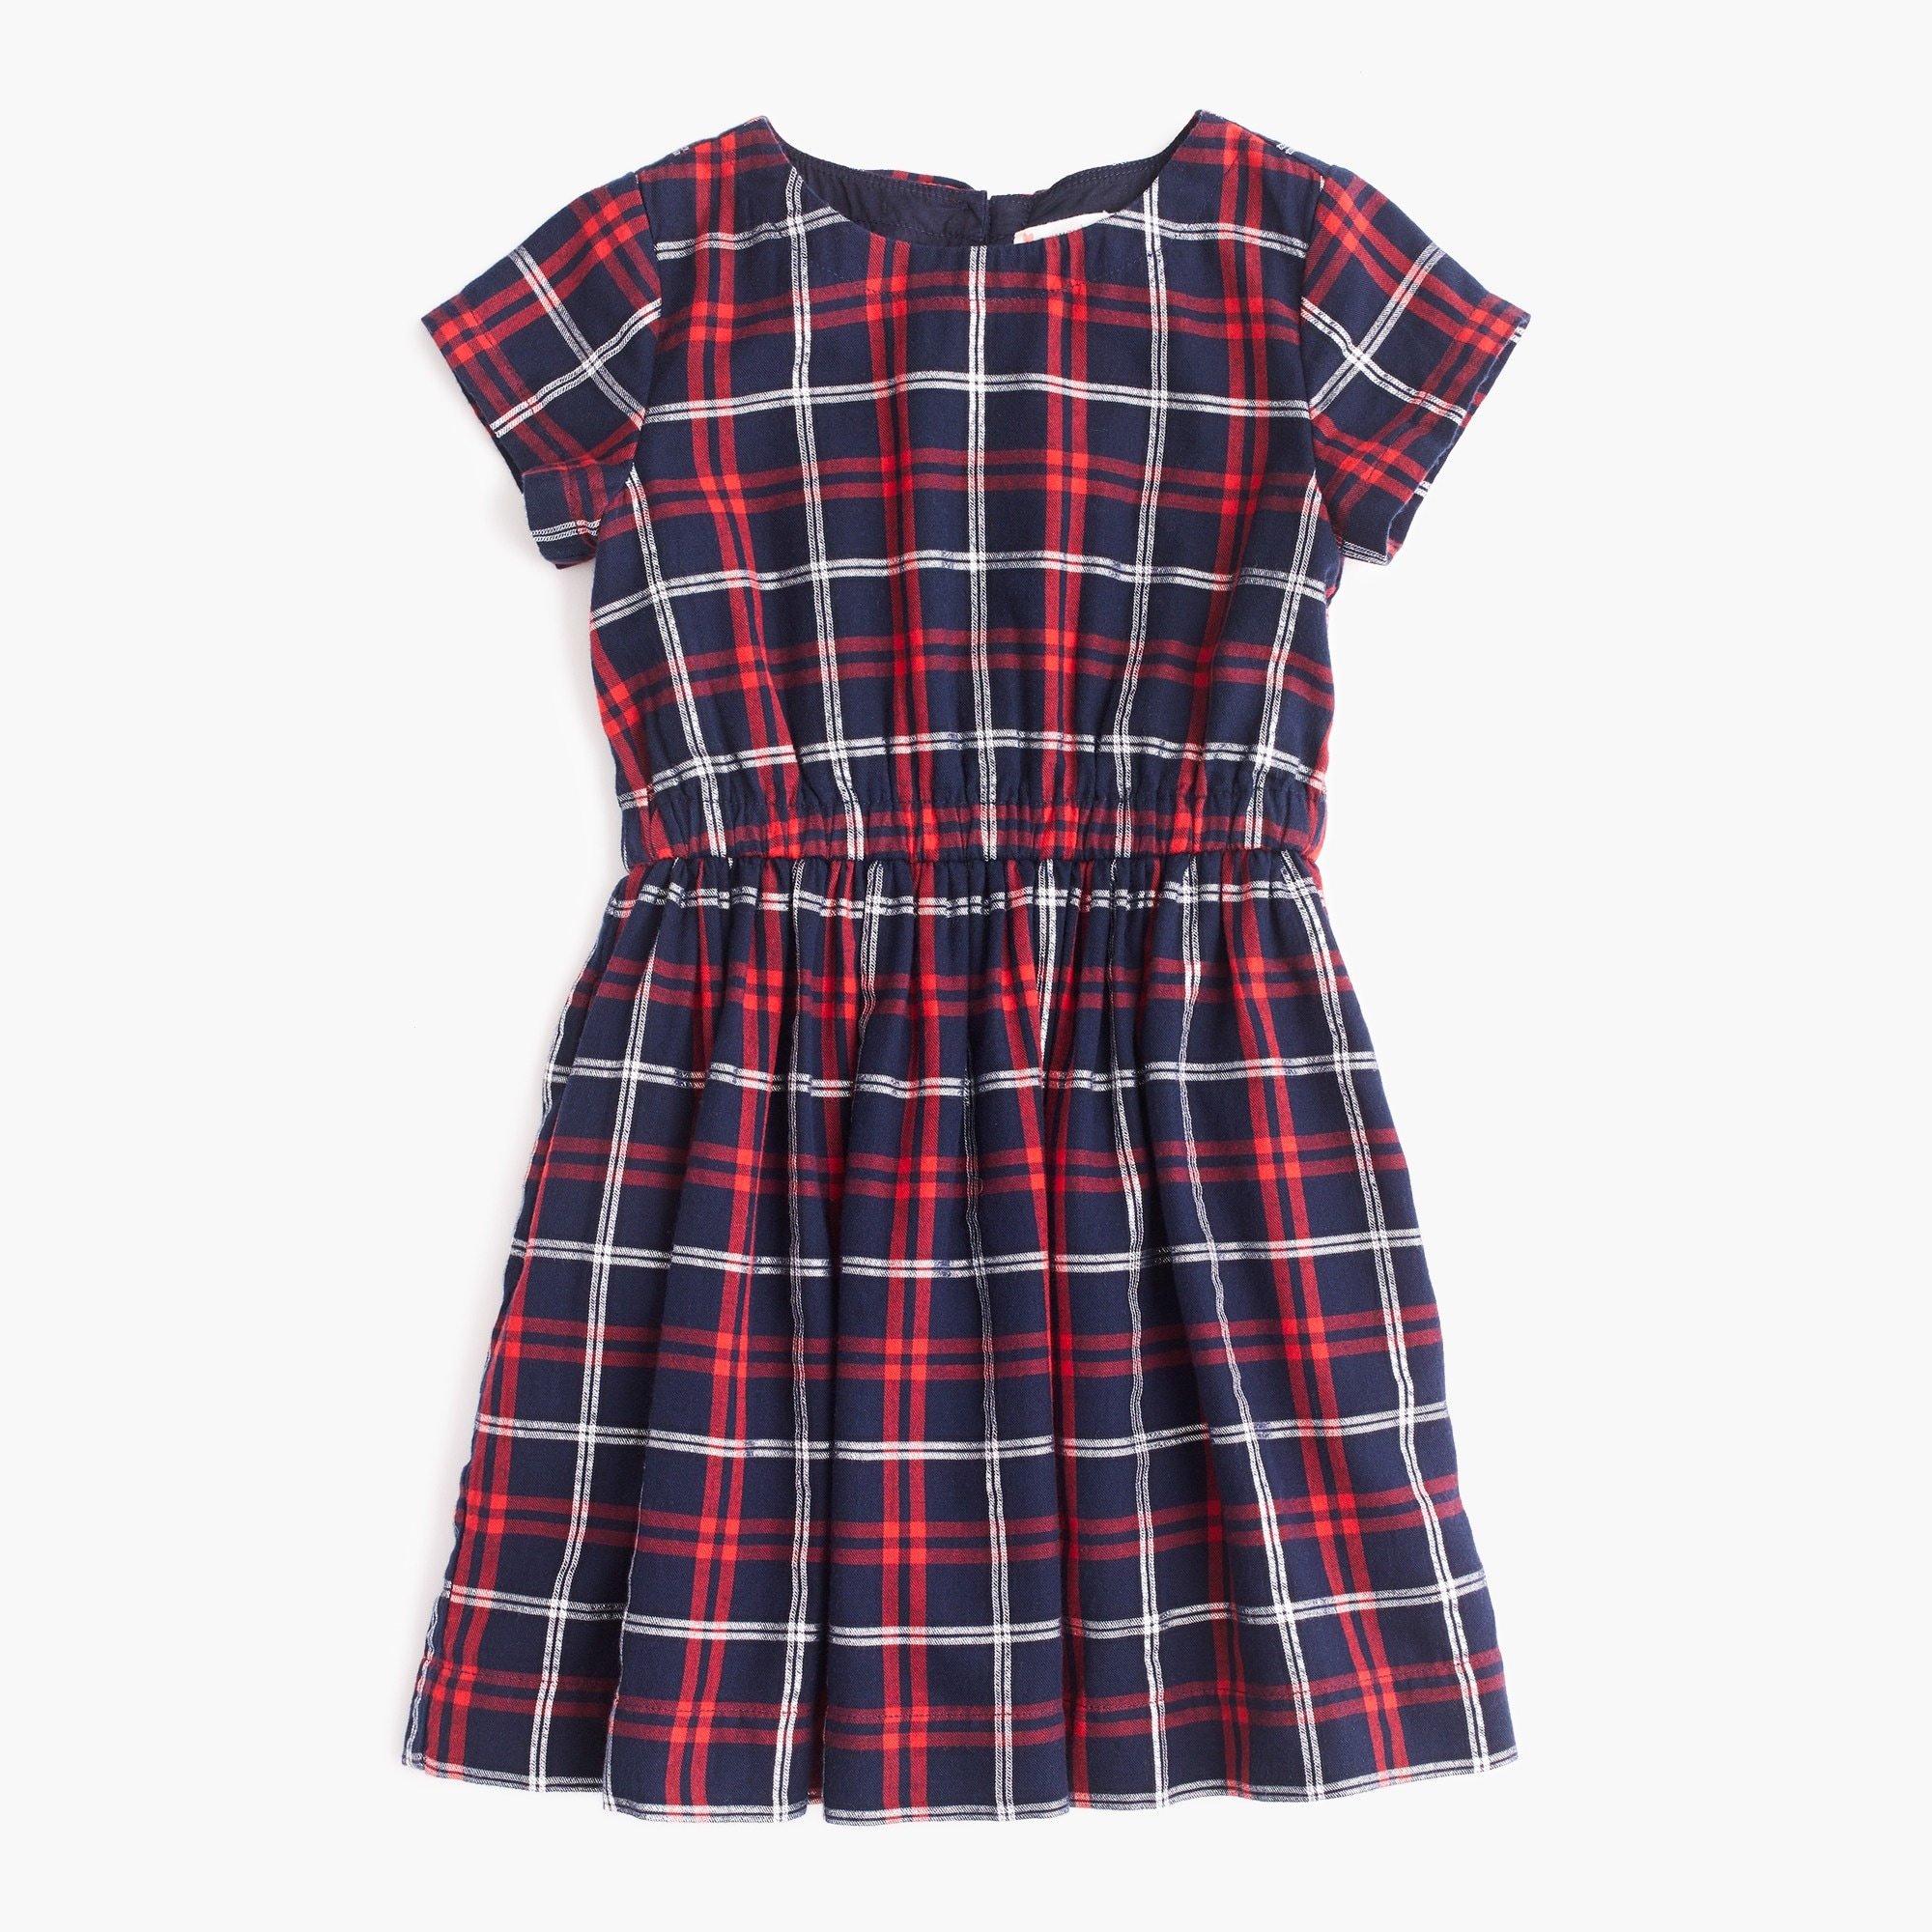 Girls' elastic-waist dress in sparkle plaid girl dresses c